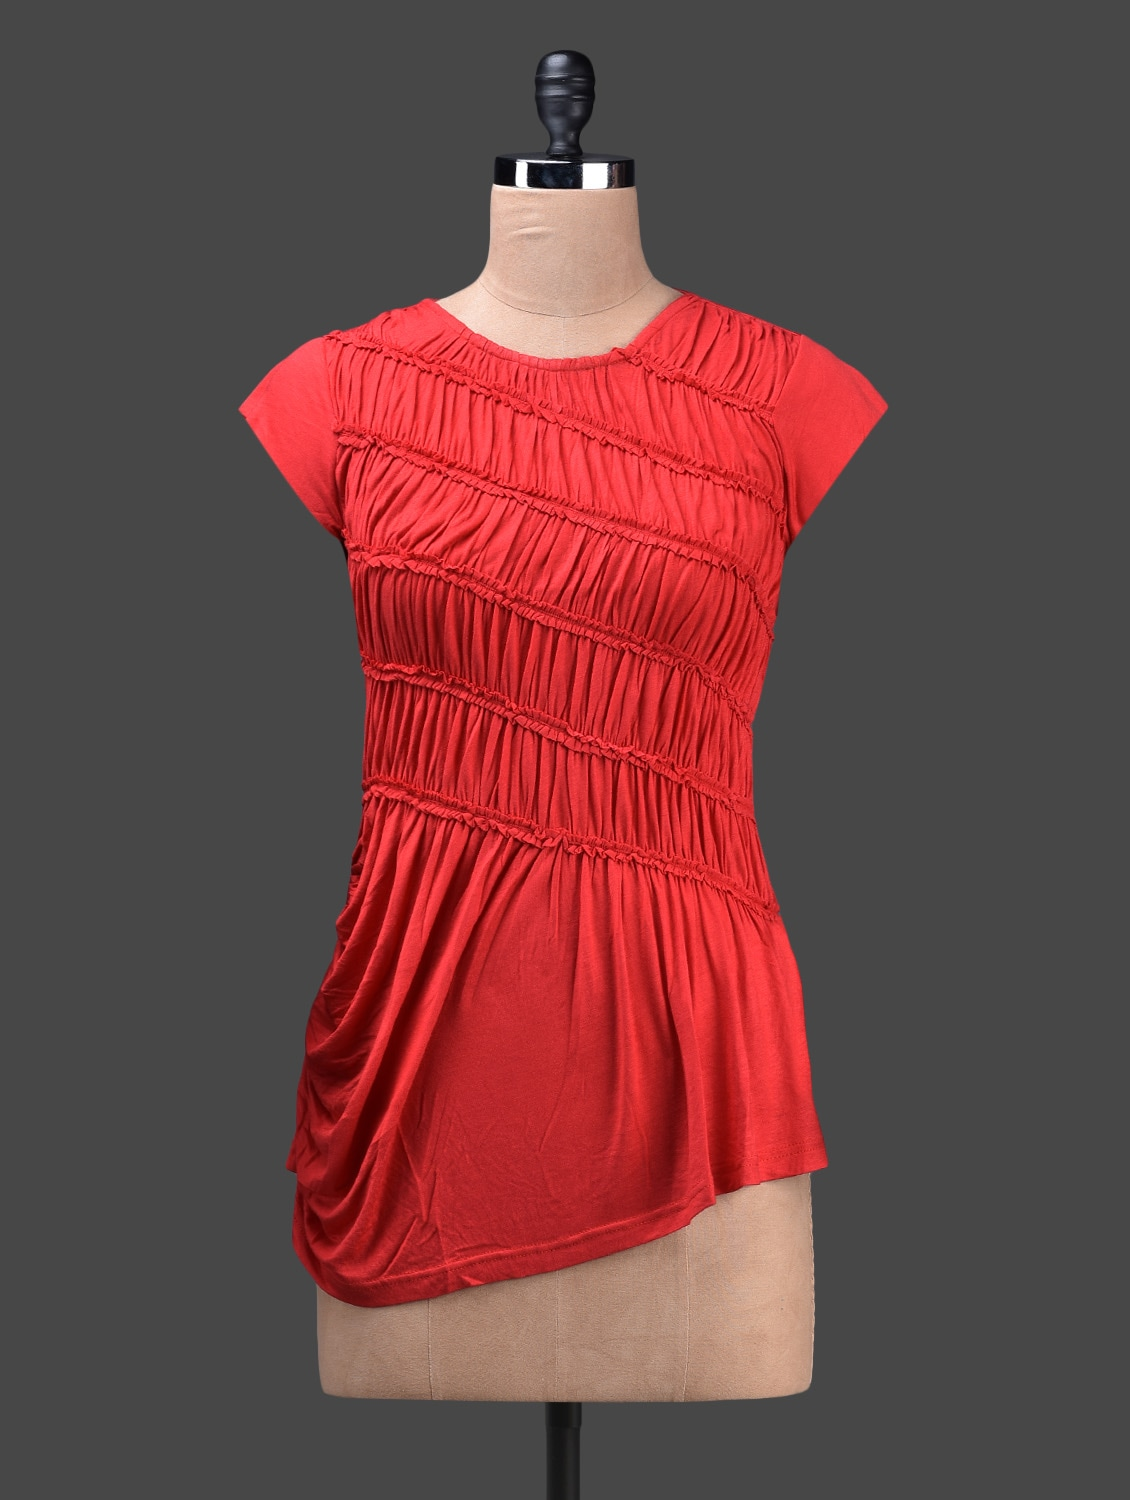 Red Viscose Knit Gathered Top - Glam And Luxe